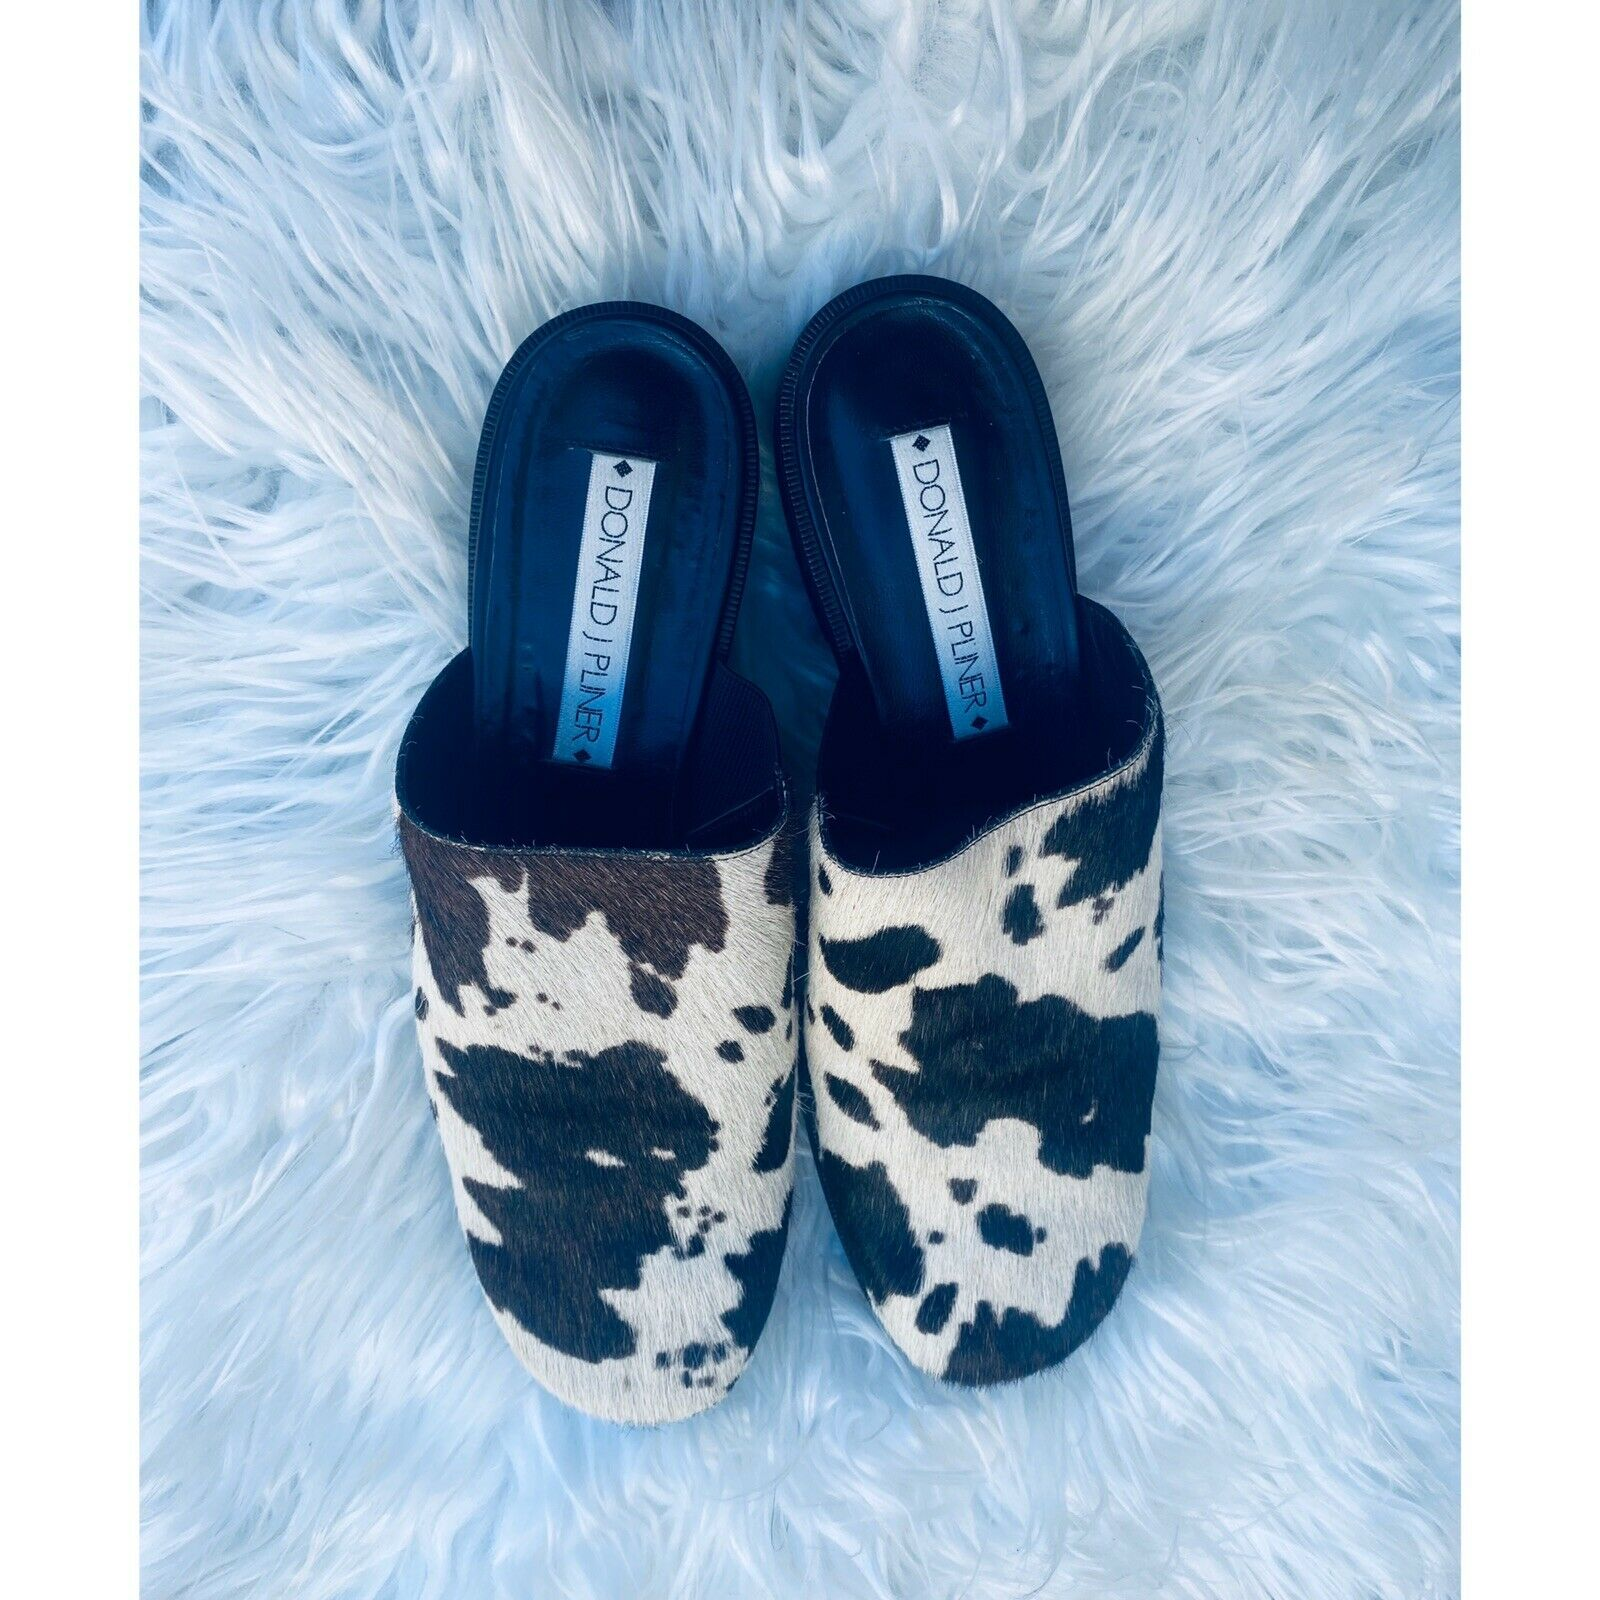 Donald Pliner 90s inspired cow hair mules - image 3